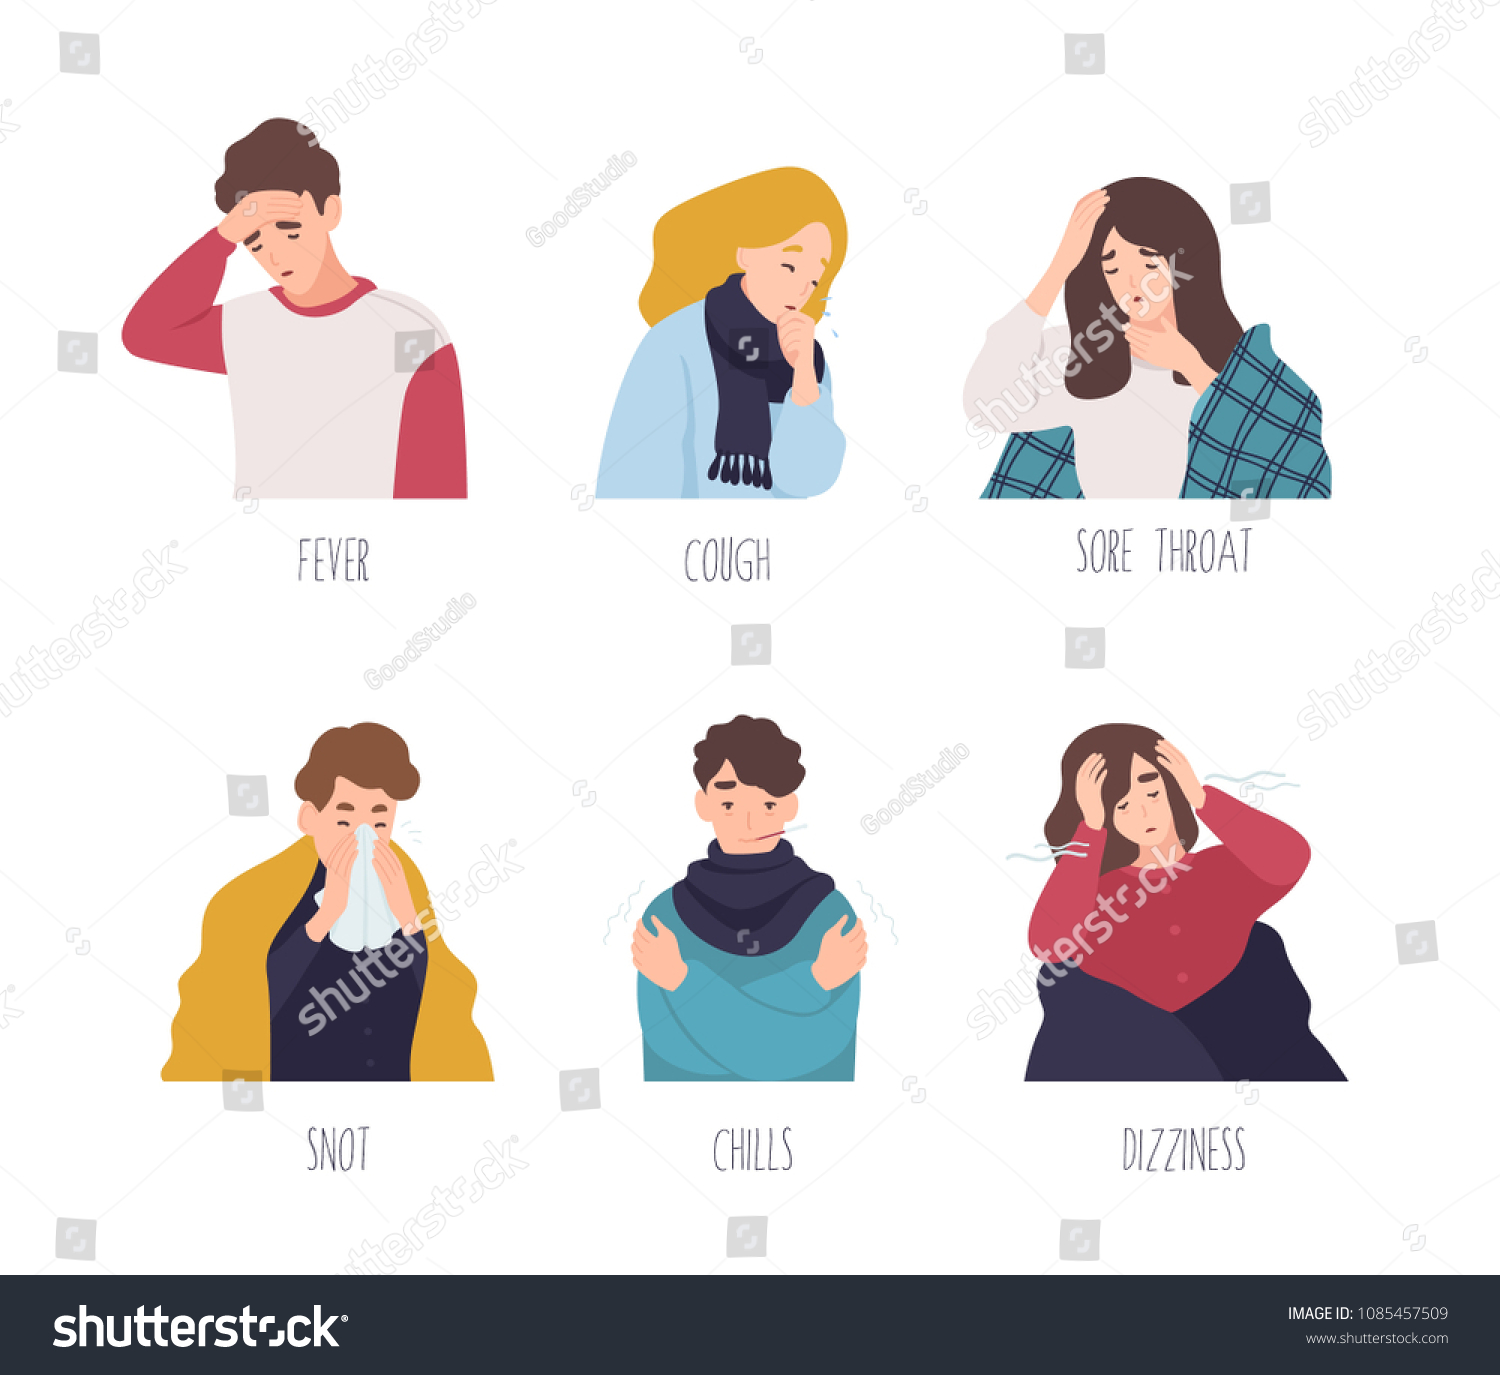 Male Female Cartoon Characters Demonstrating Symptoms Stock Vector Royalty Free 1085457509